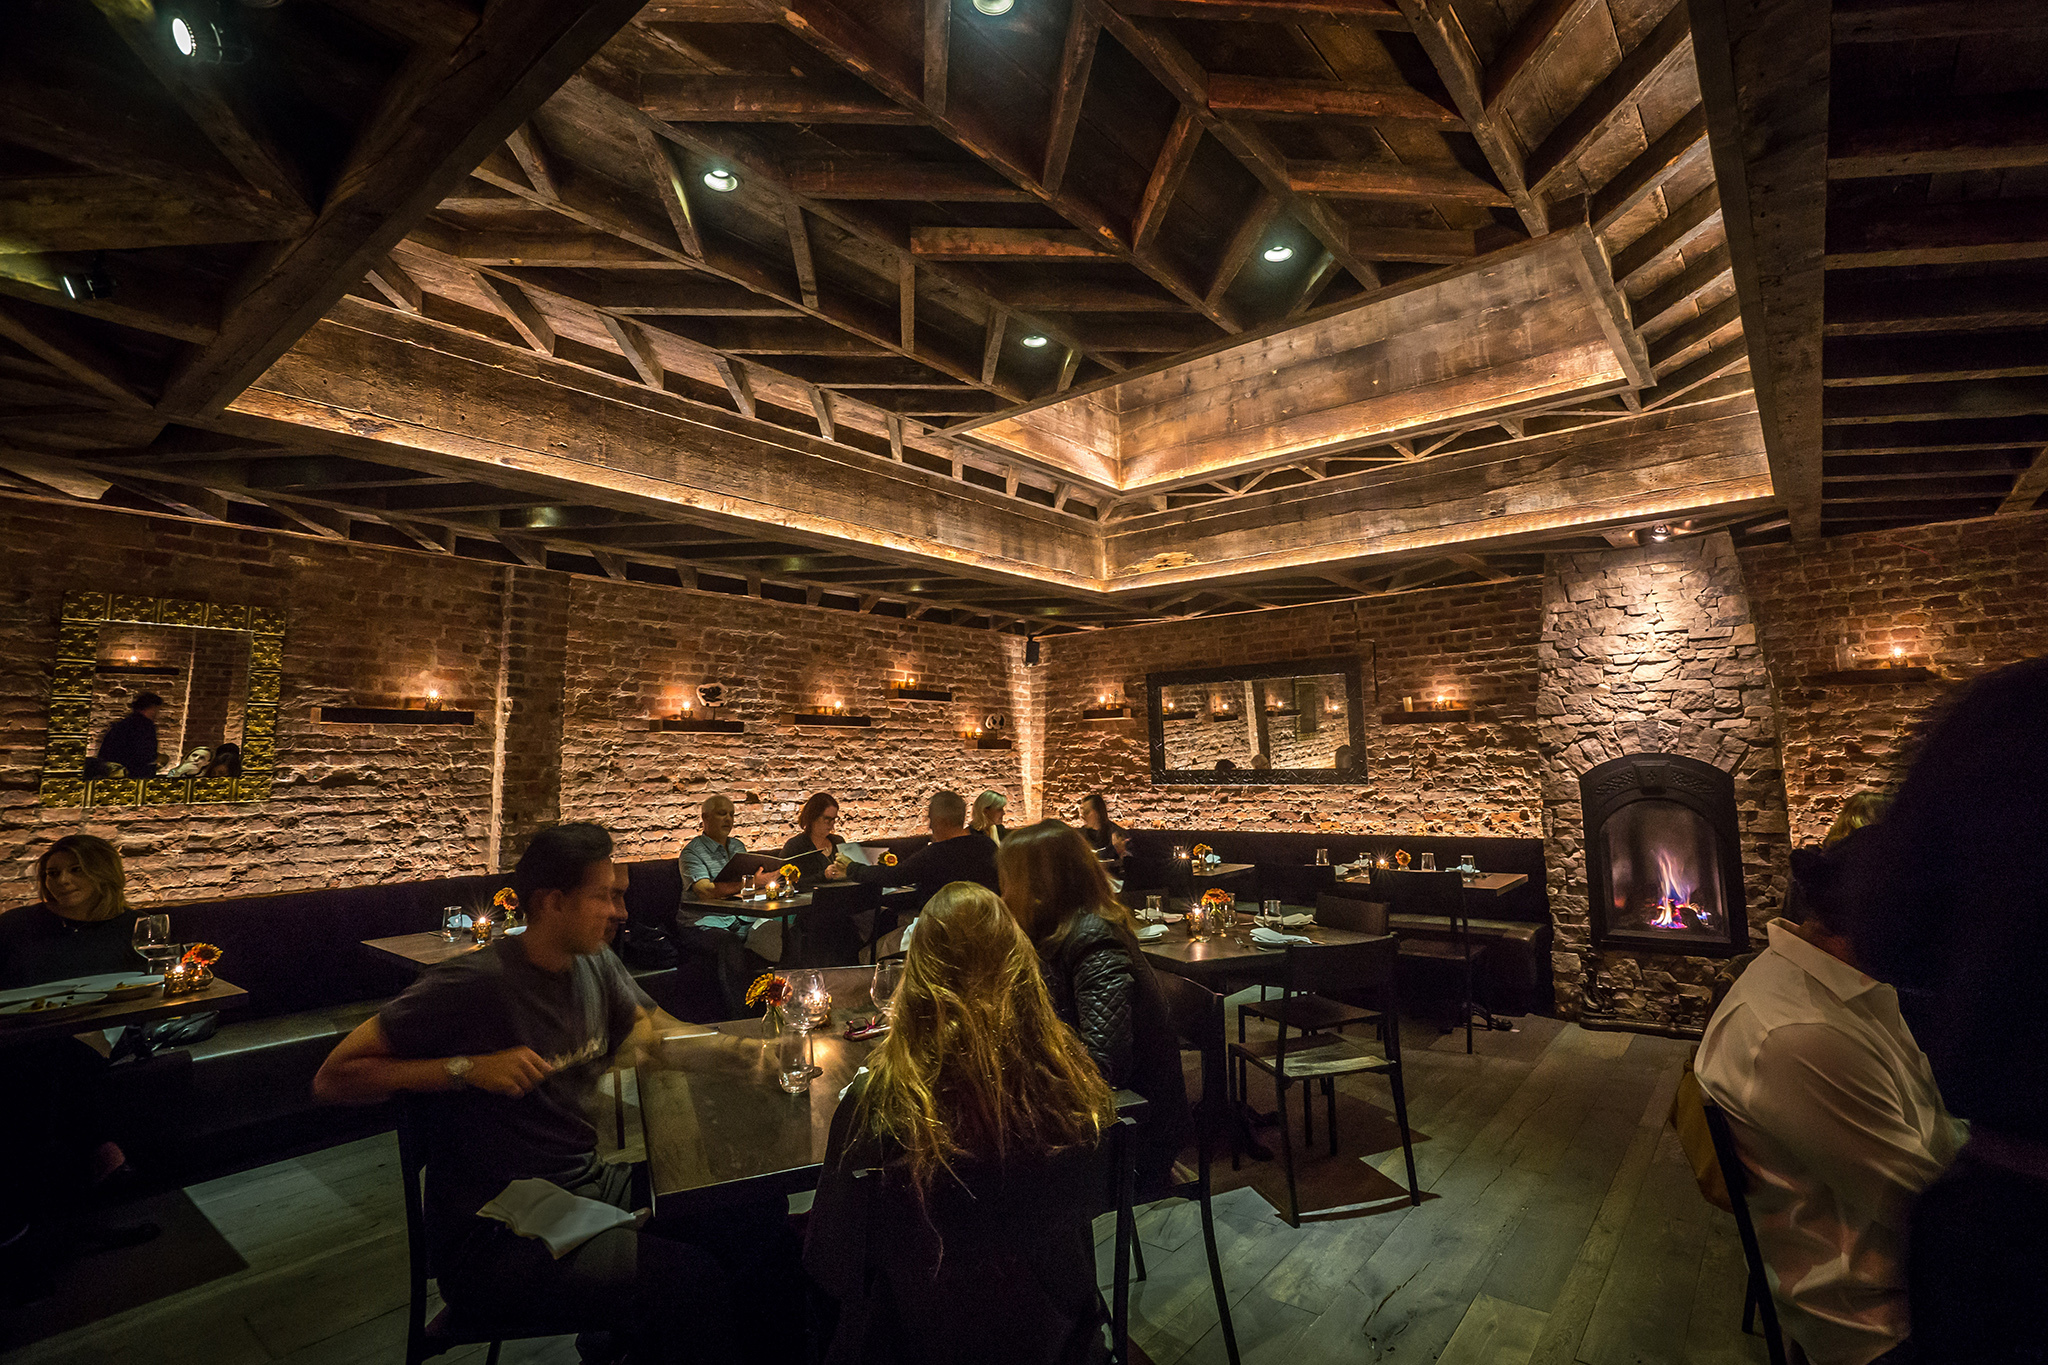 Most romantic restaurants in nyc for date night for Hippest hotels in nyc